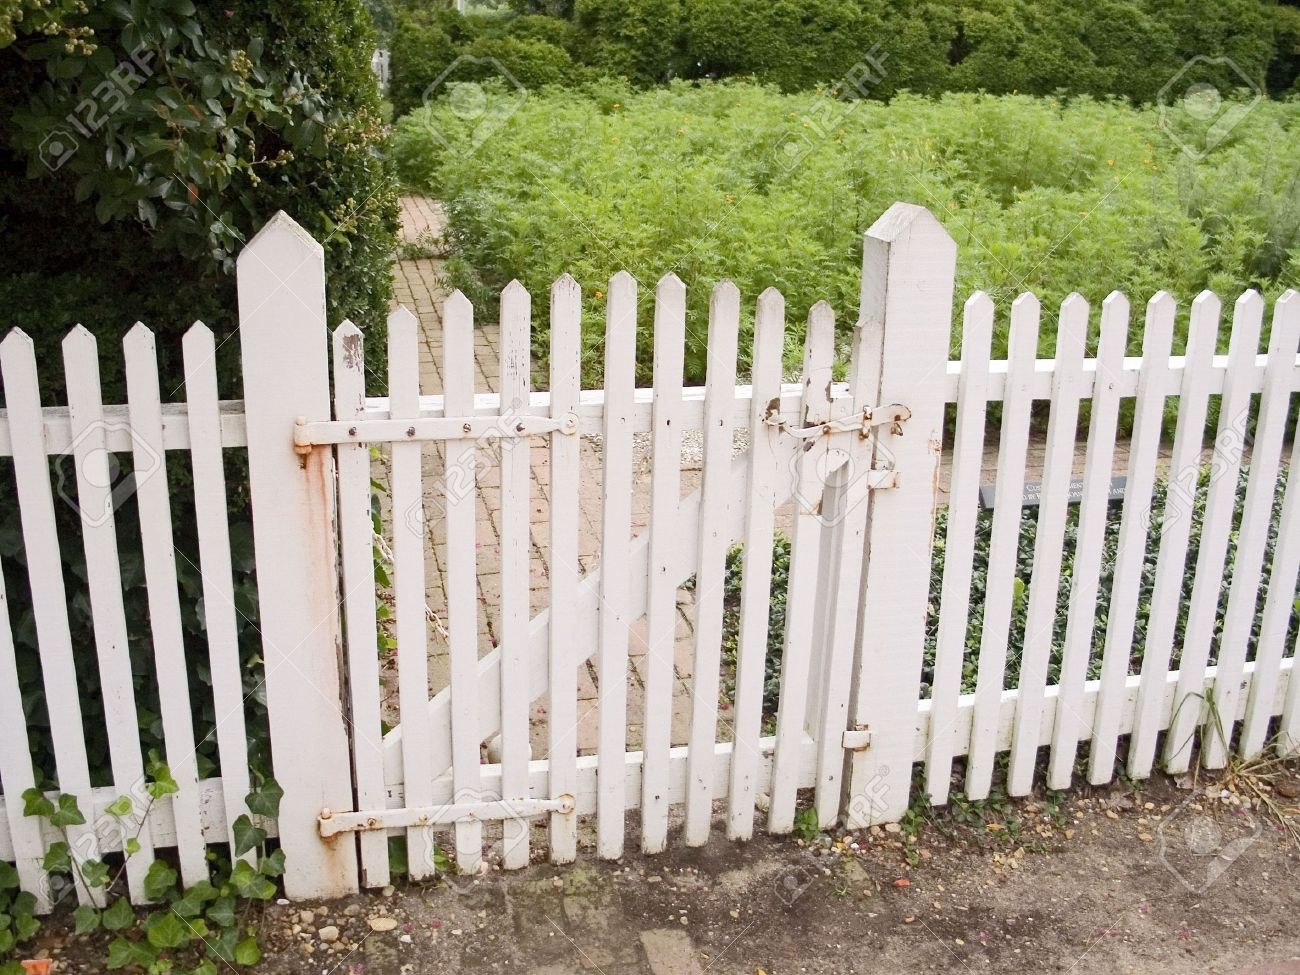 picket fence gate. an old white picket fence and garden gate stock photo 747165 t